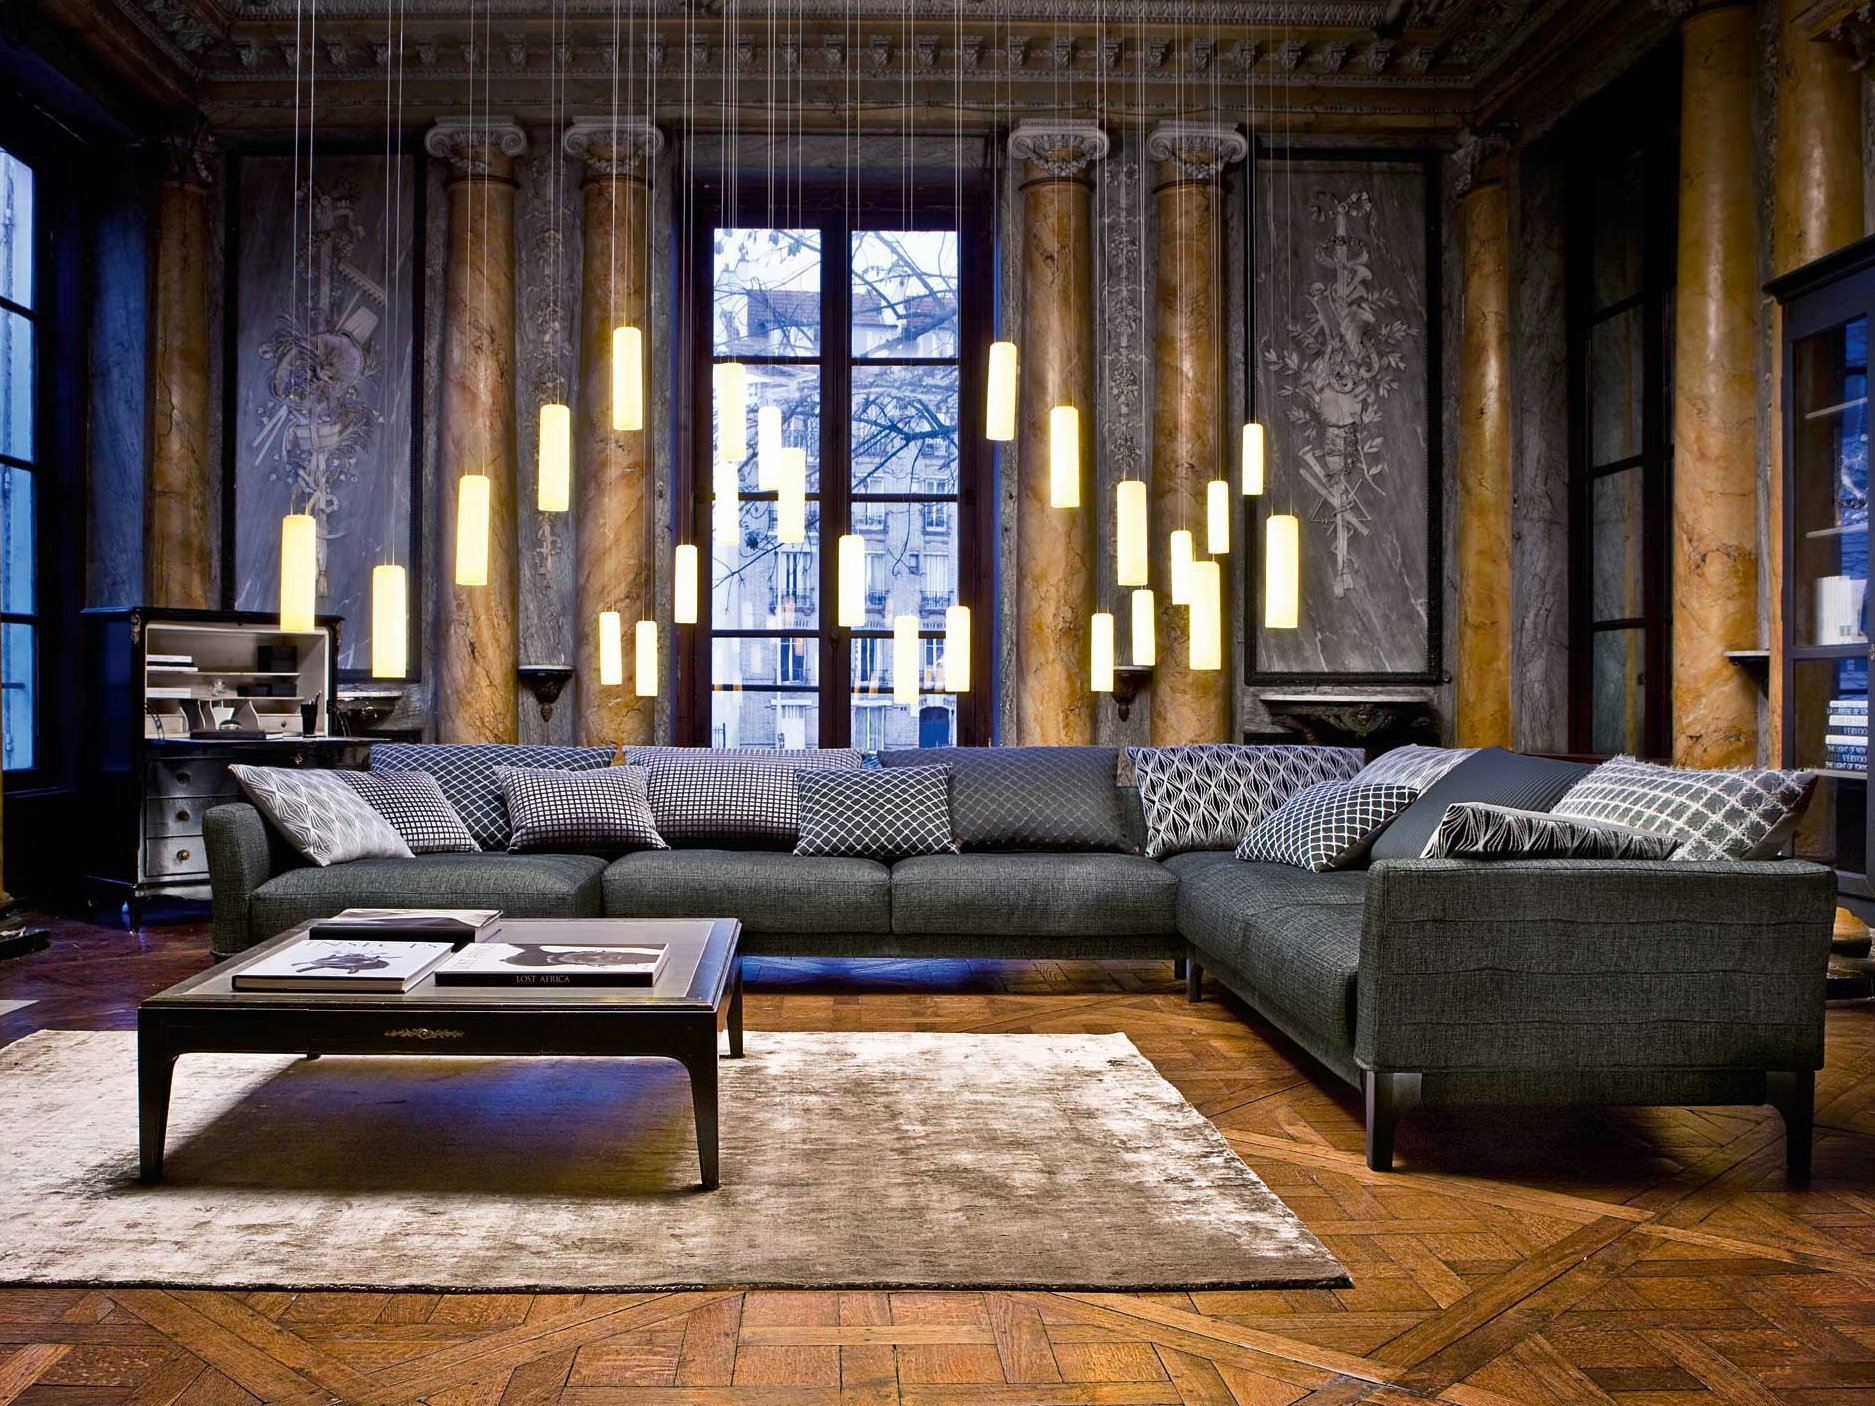 sectional fabric sofa confession nouveaux classiques collection by roche bobois design studio memo. Black Bedroom Furniture Sets. Home Design Ideas